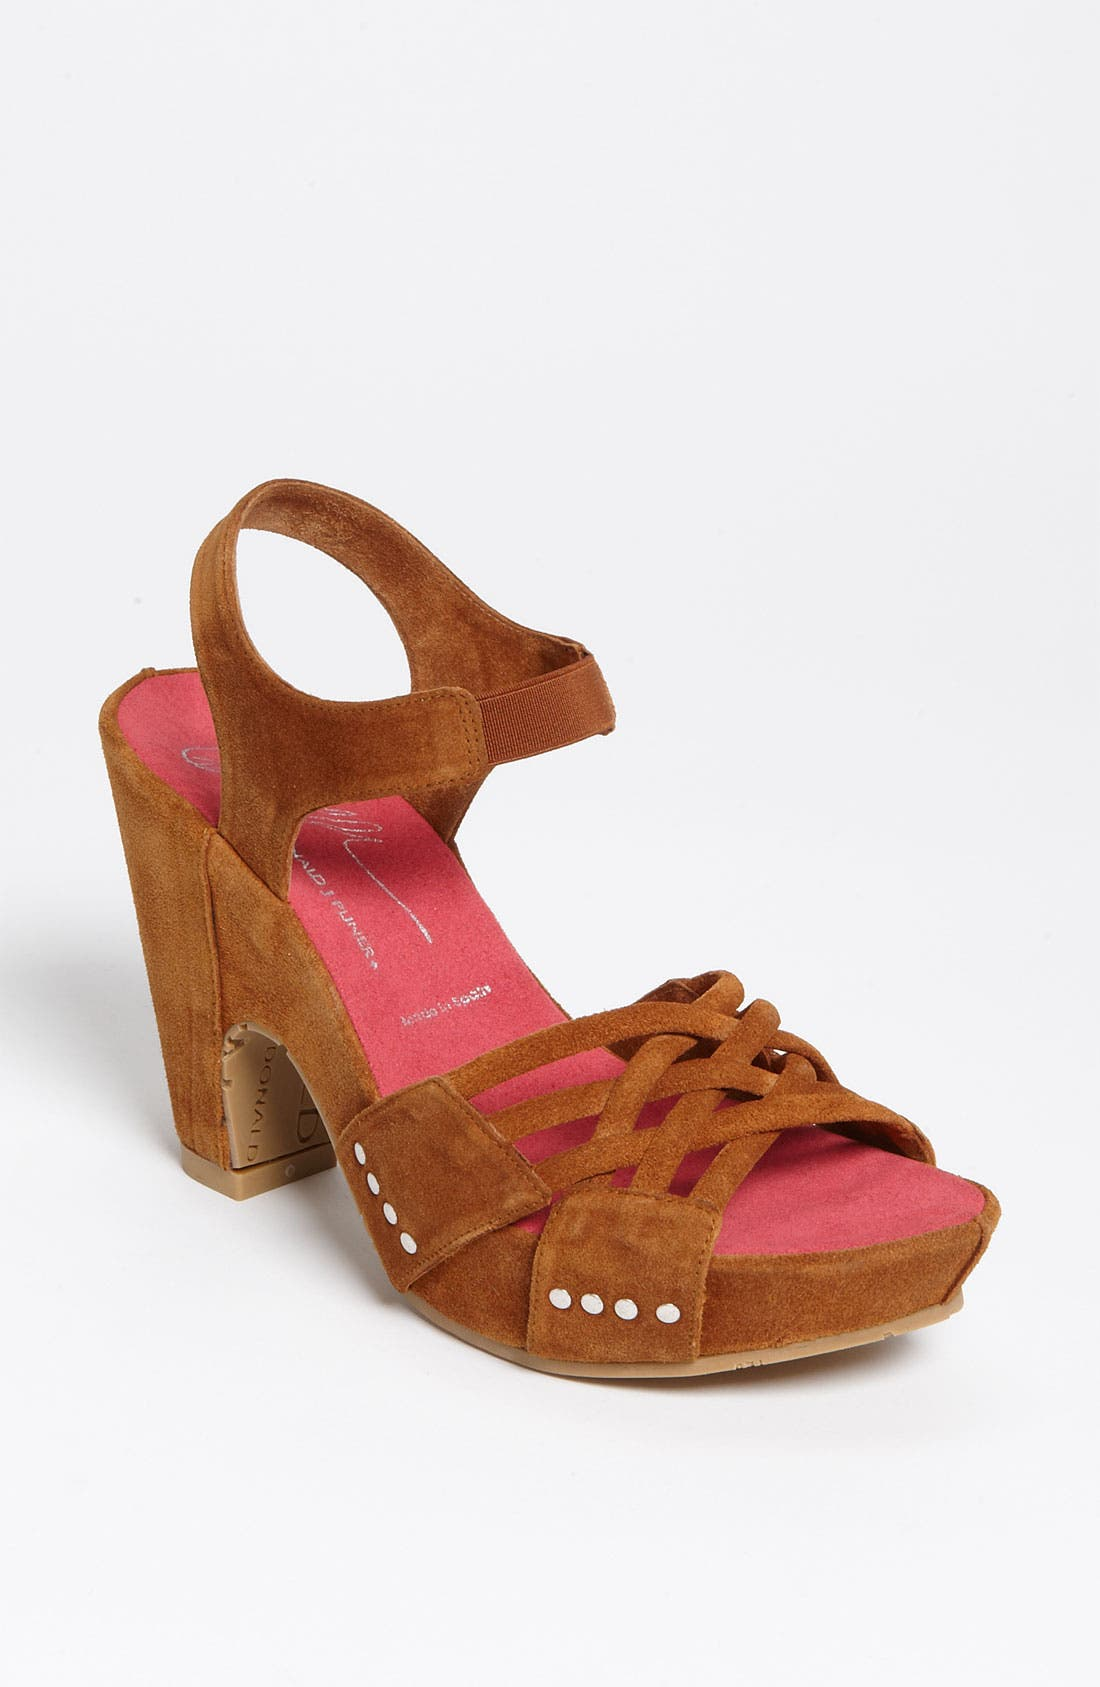 Alternate Image 1 Selected - Donald J Pliner 'Hally' Sandal